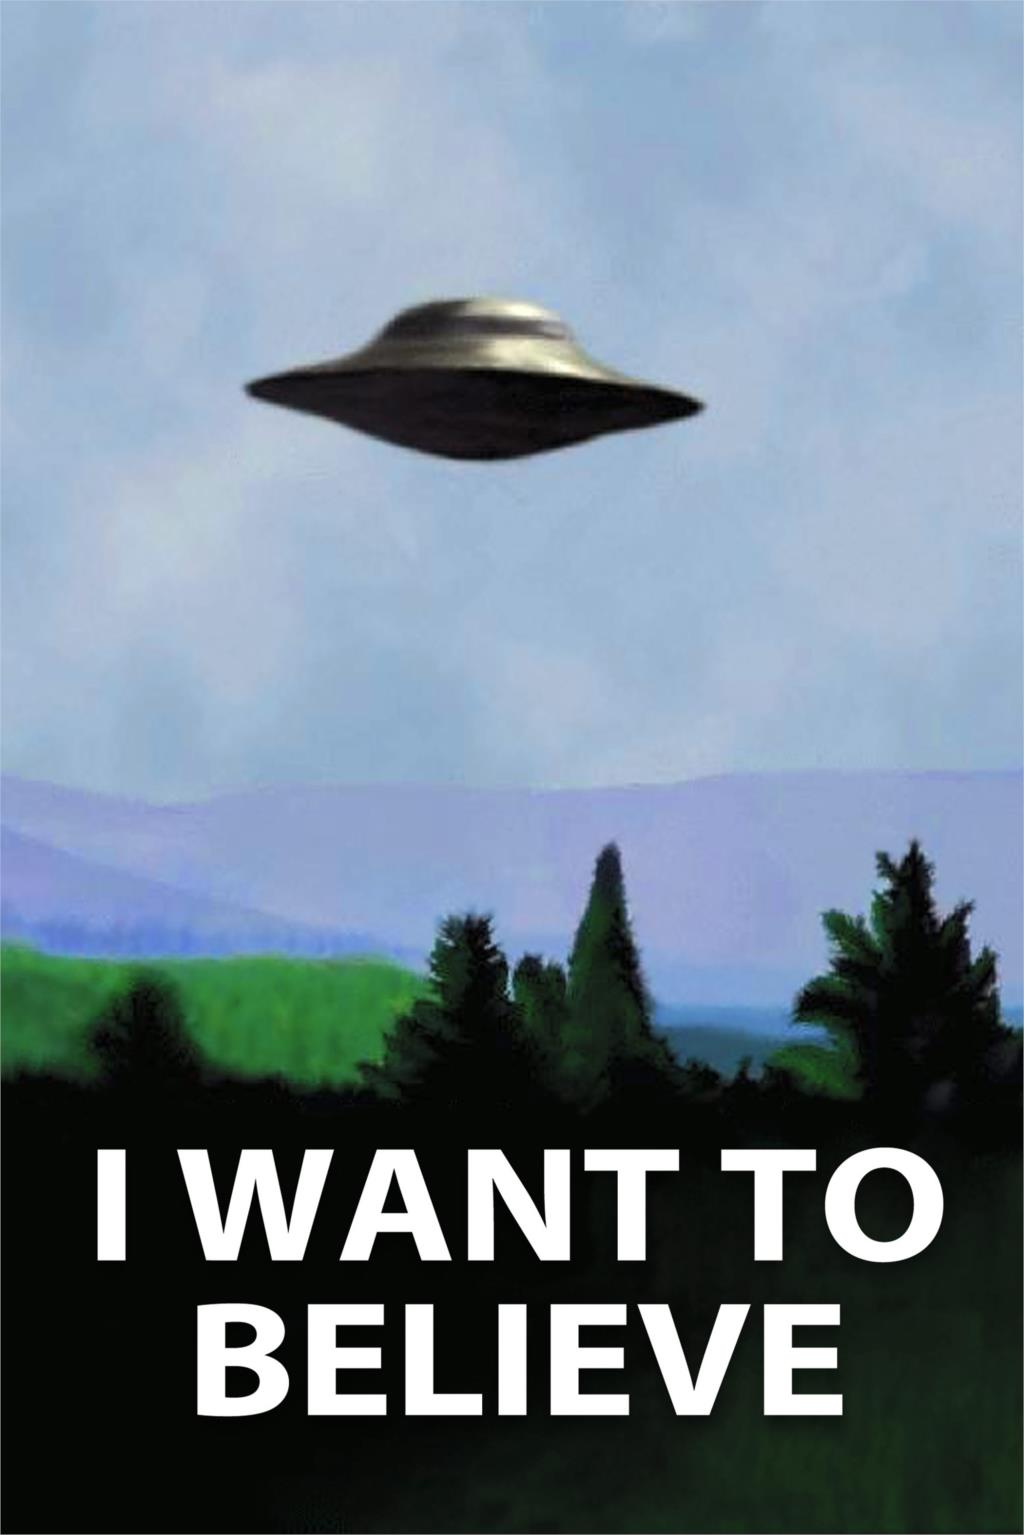 DIY frame UFO The X Files I Want To Believe TV Poster ... X Files I Want To Believe Book